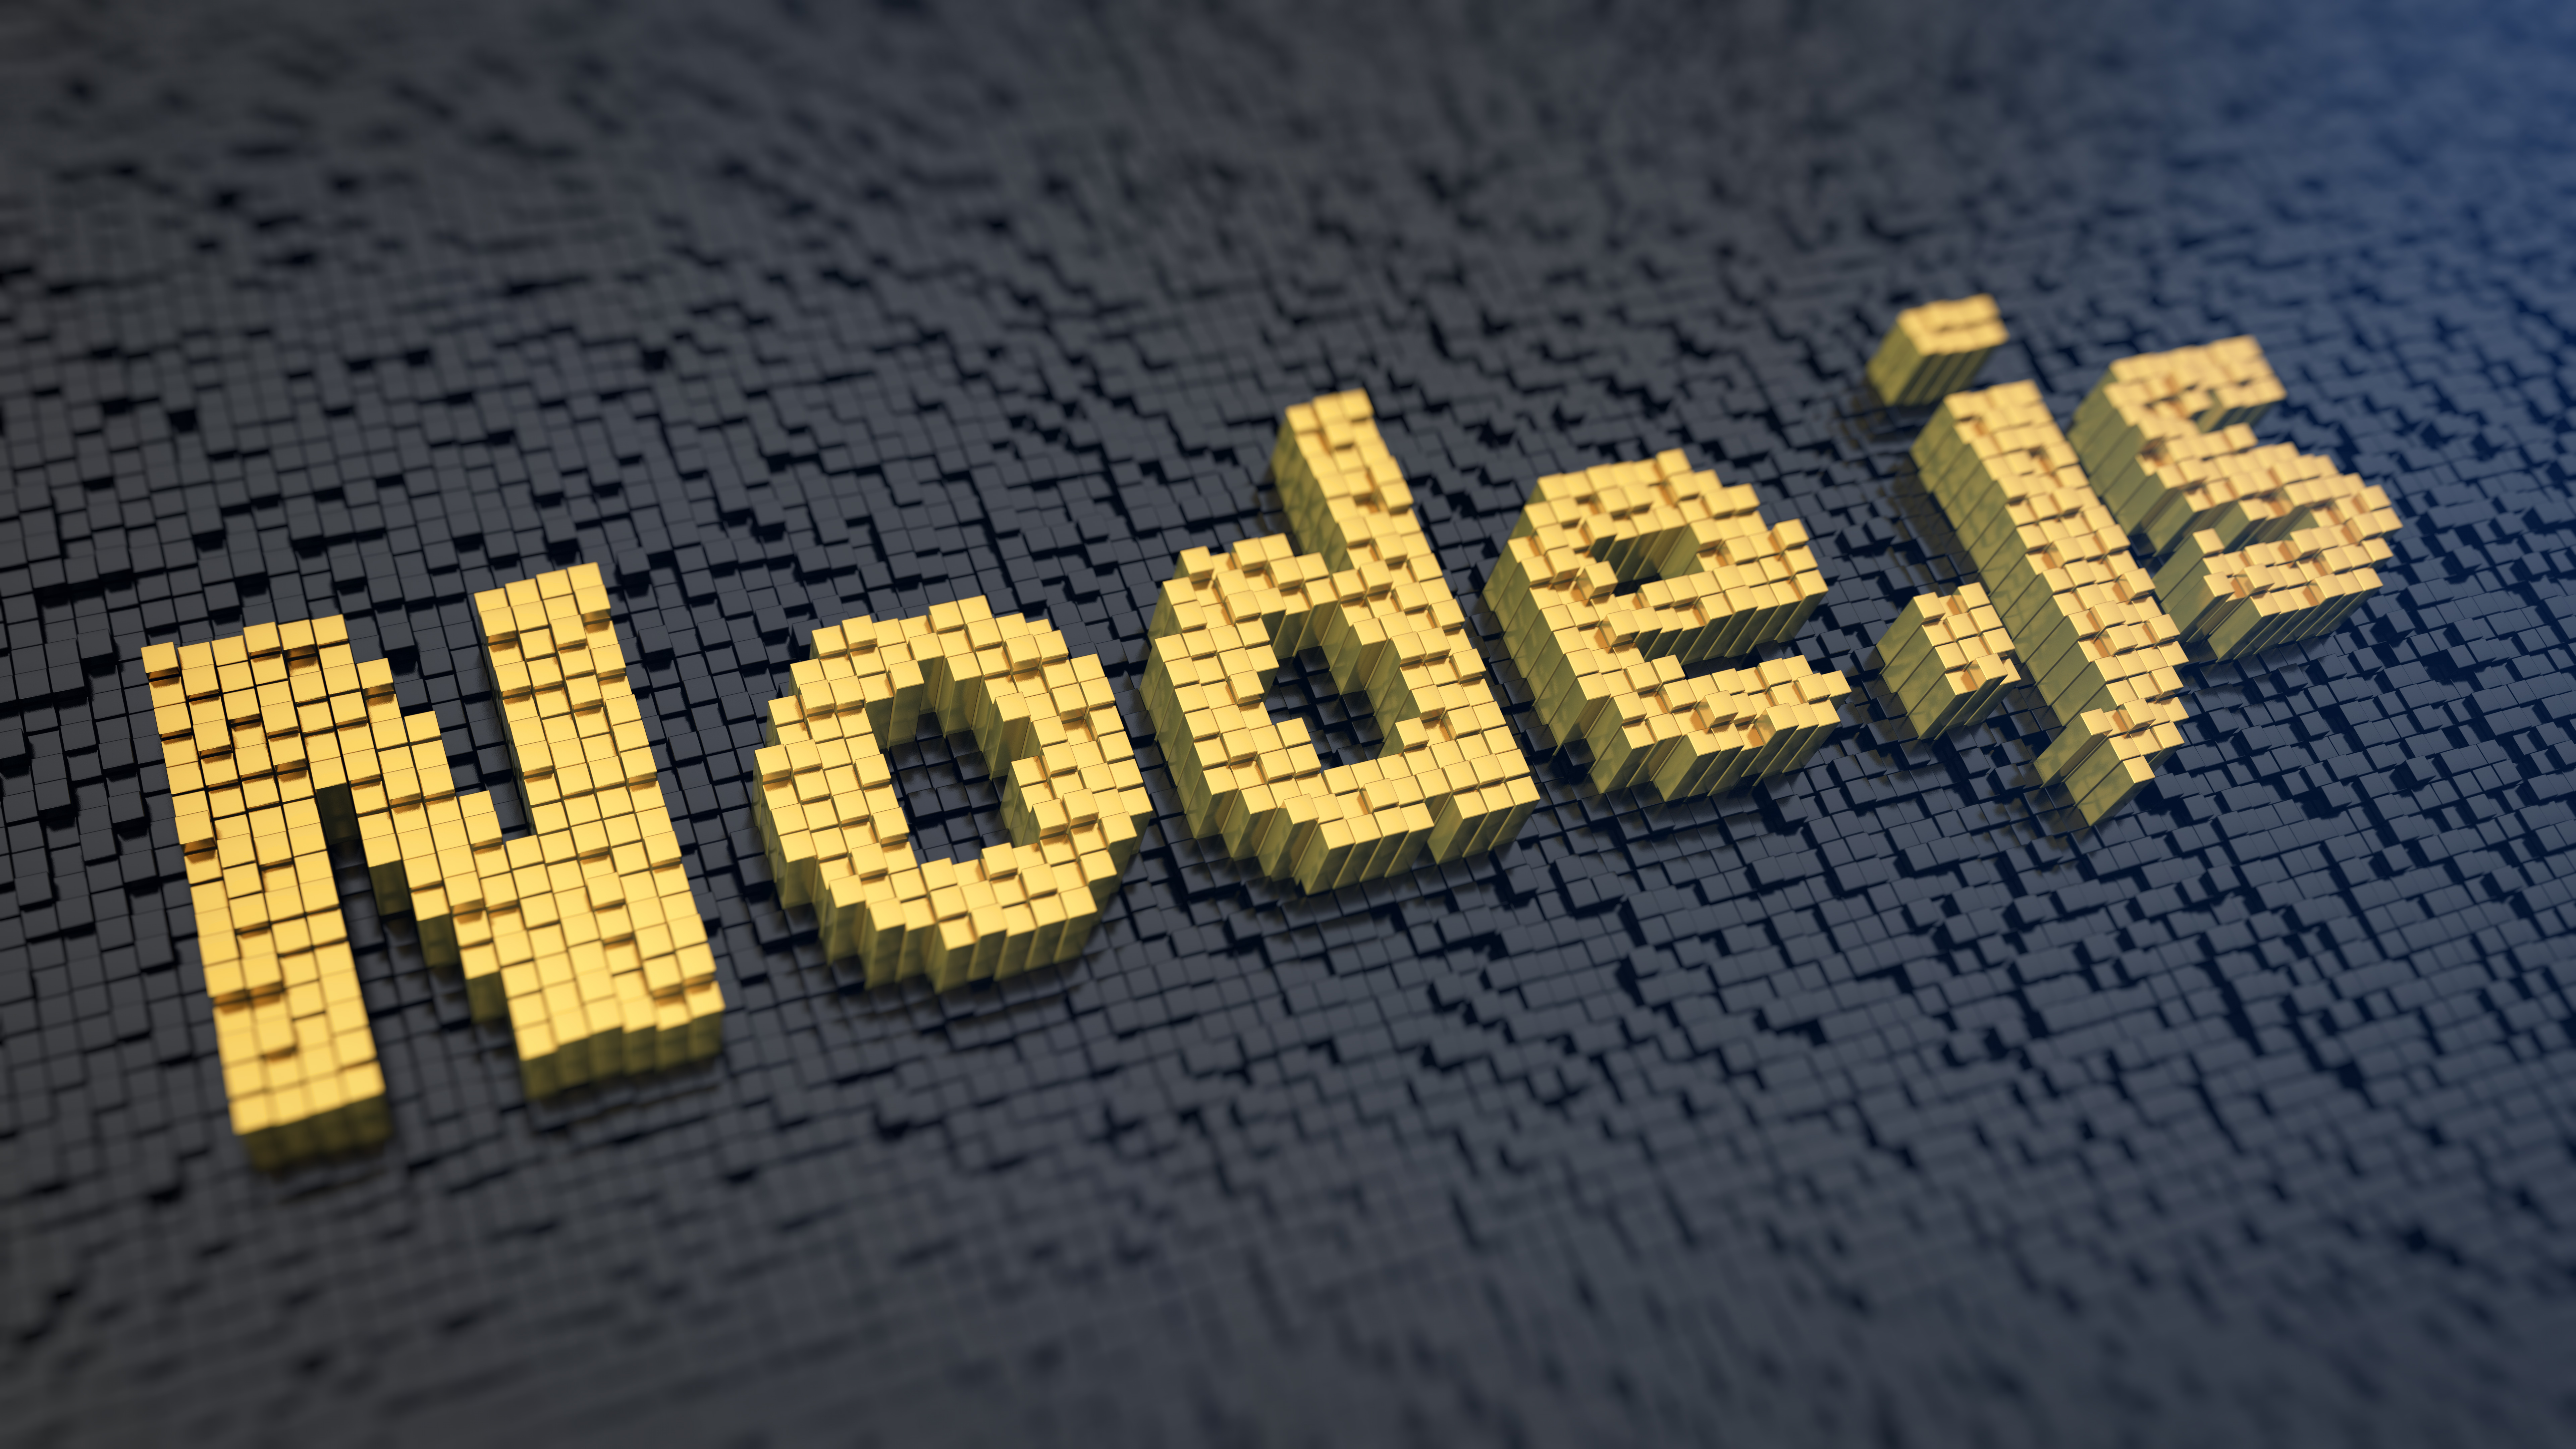 Review of Node.JS: Pros and Cons